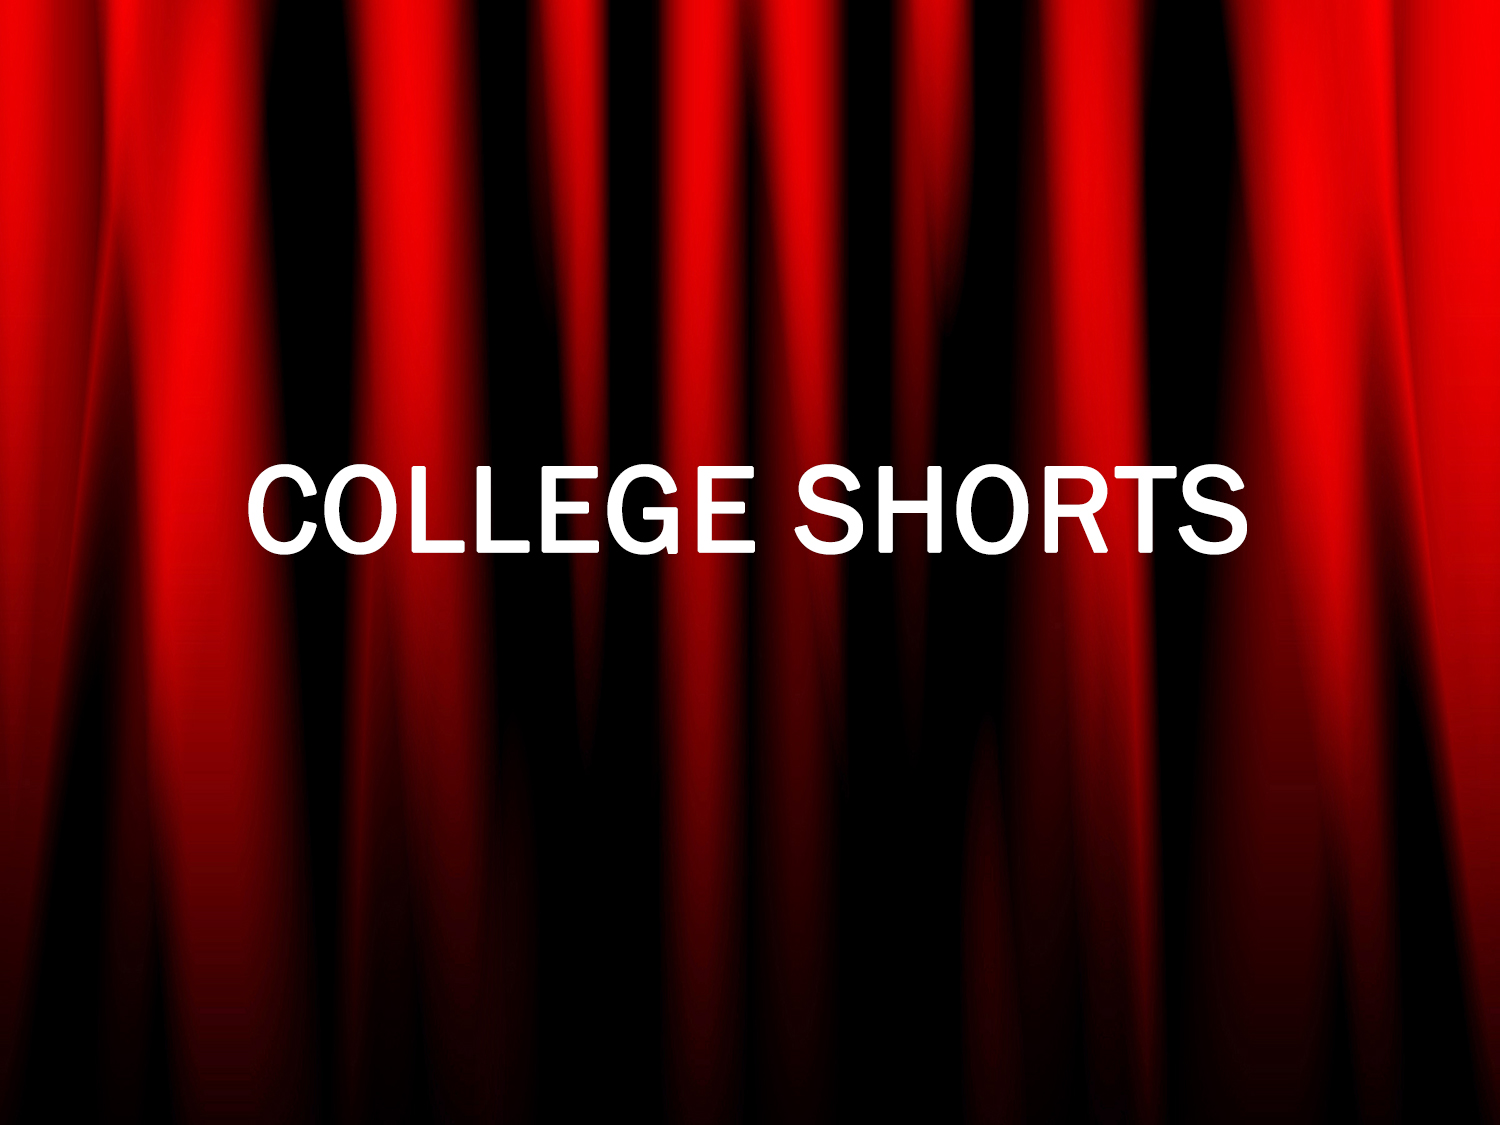 RedDrapes_College_Shorts_1500x1125.jpg